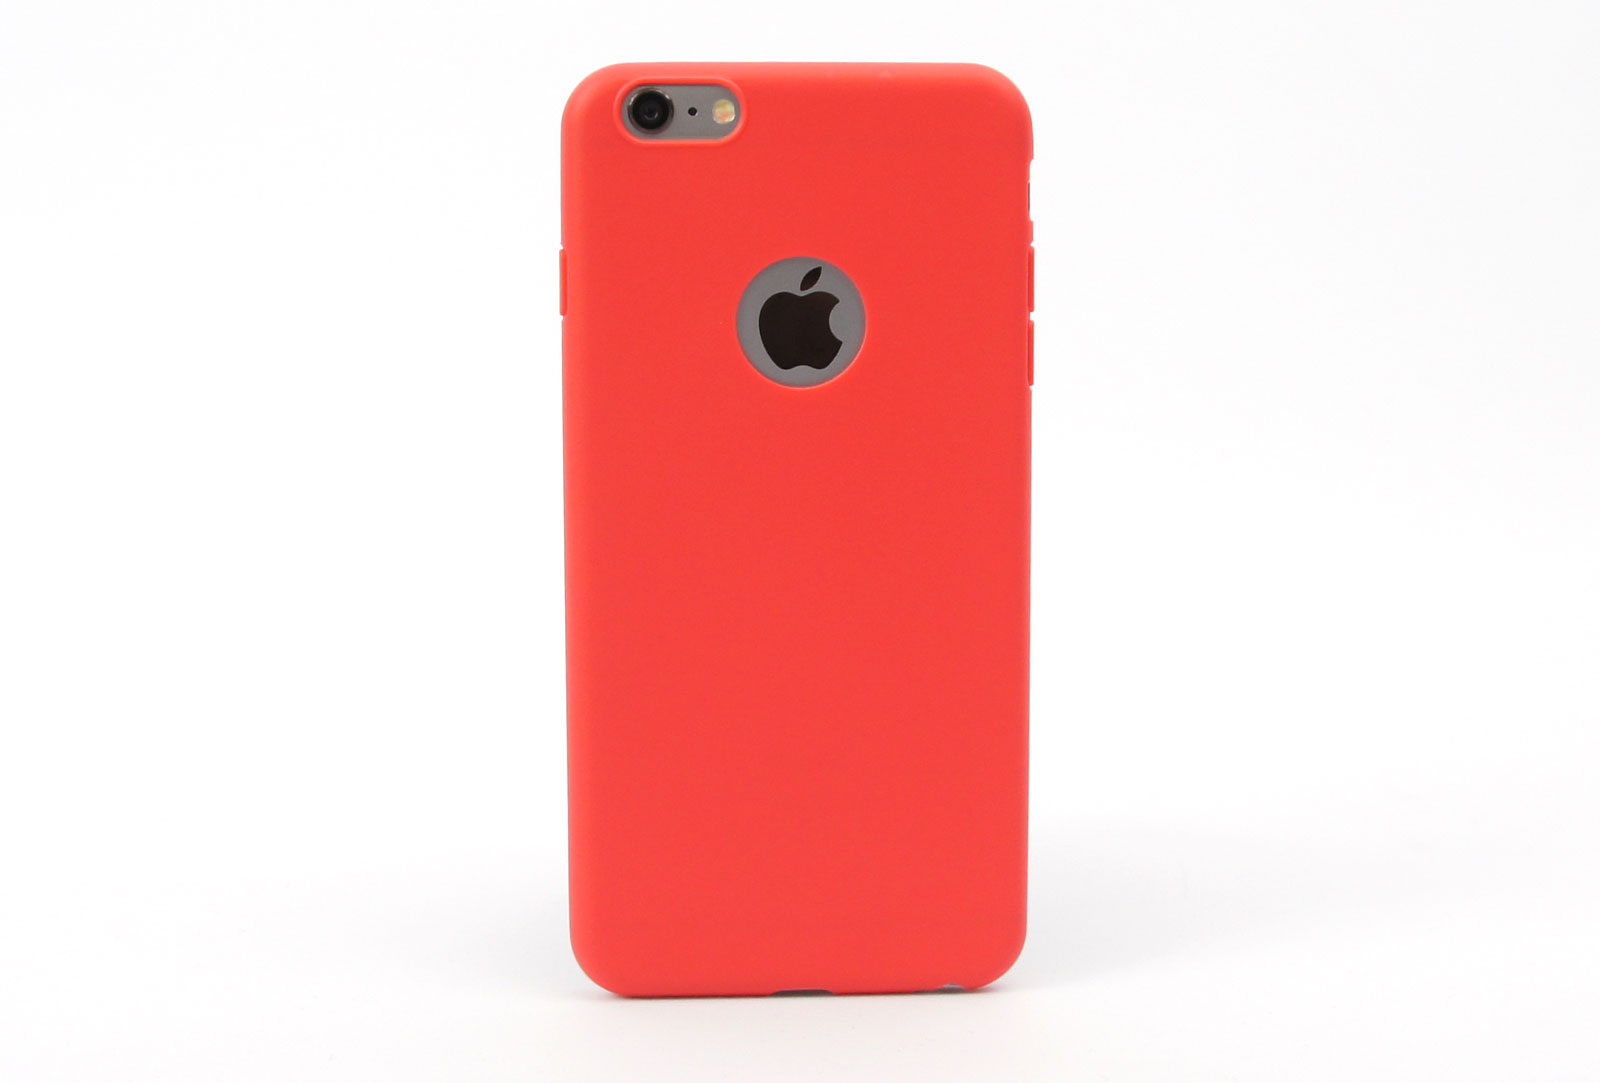 Coque Iphone S Rouge